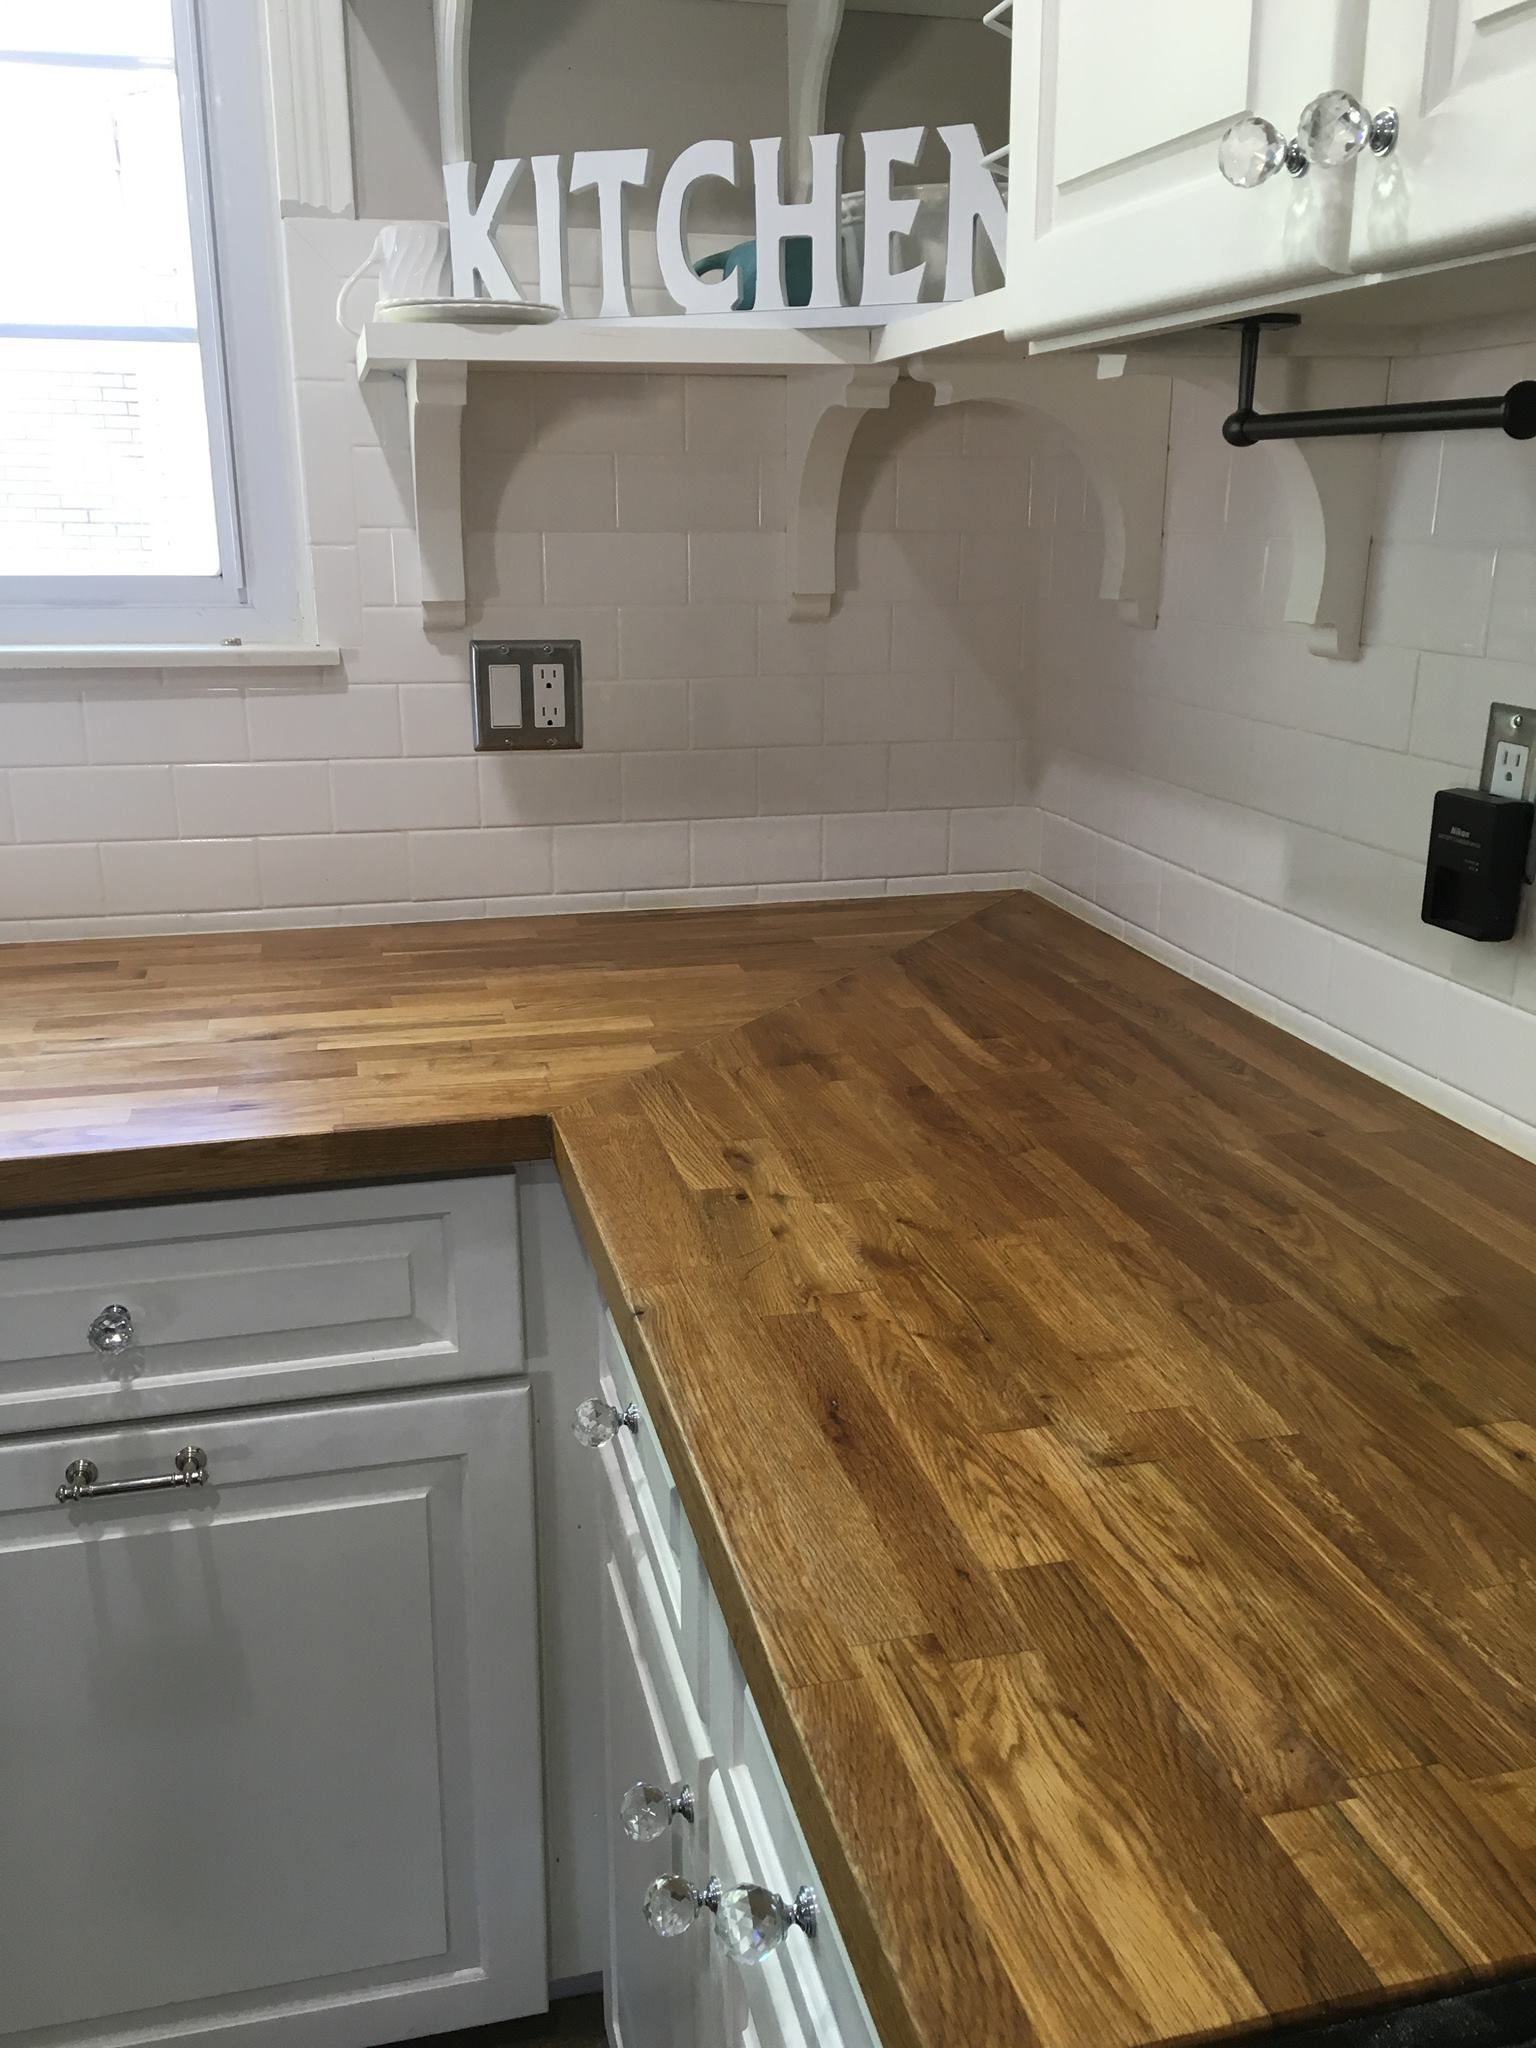 10 Reasons To Fall in Love With Wood Countertops For Your ...